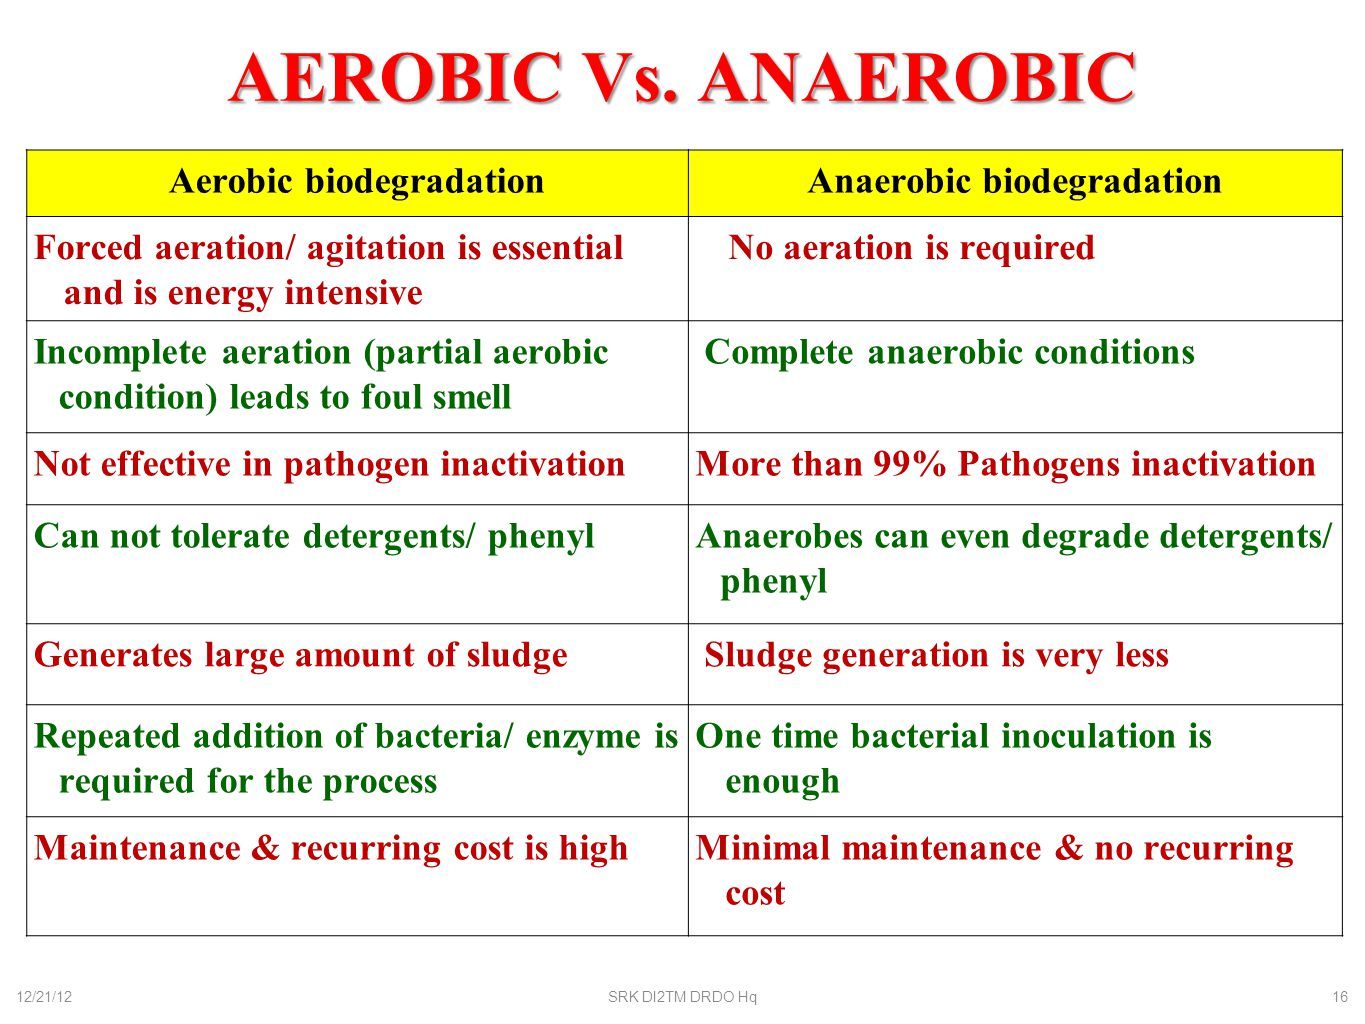 aerobic anaerobic biodegradation Microbial methods for degradation (biodegradation) of soil contaminants, or bioremediation4 these methods both aerobic and anaerobic biodegradation of.